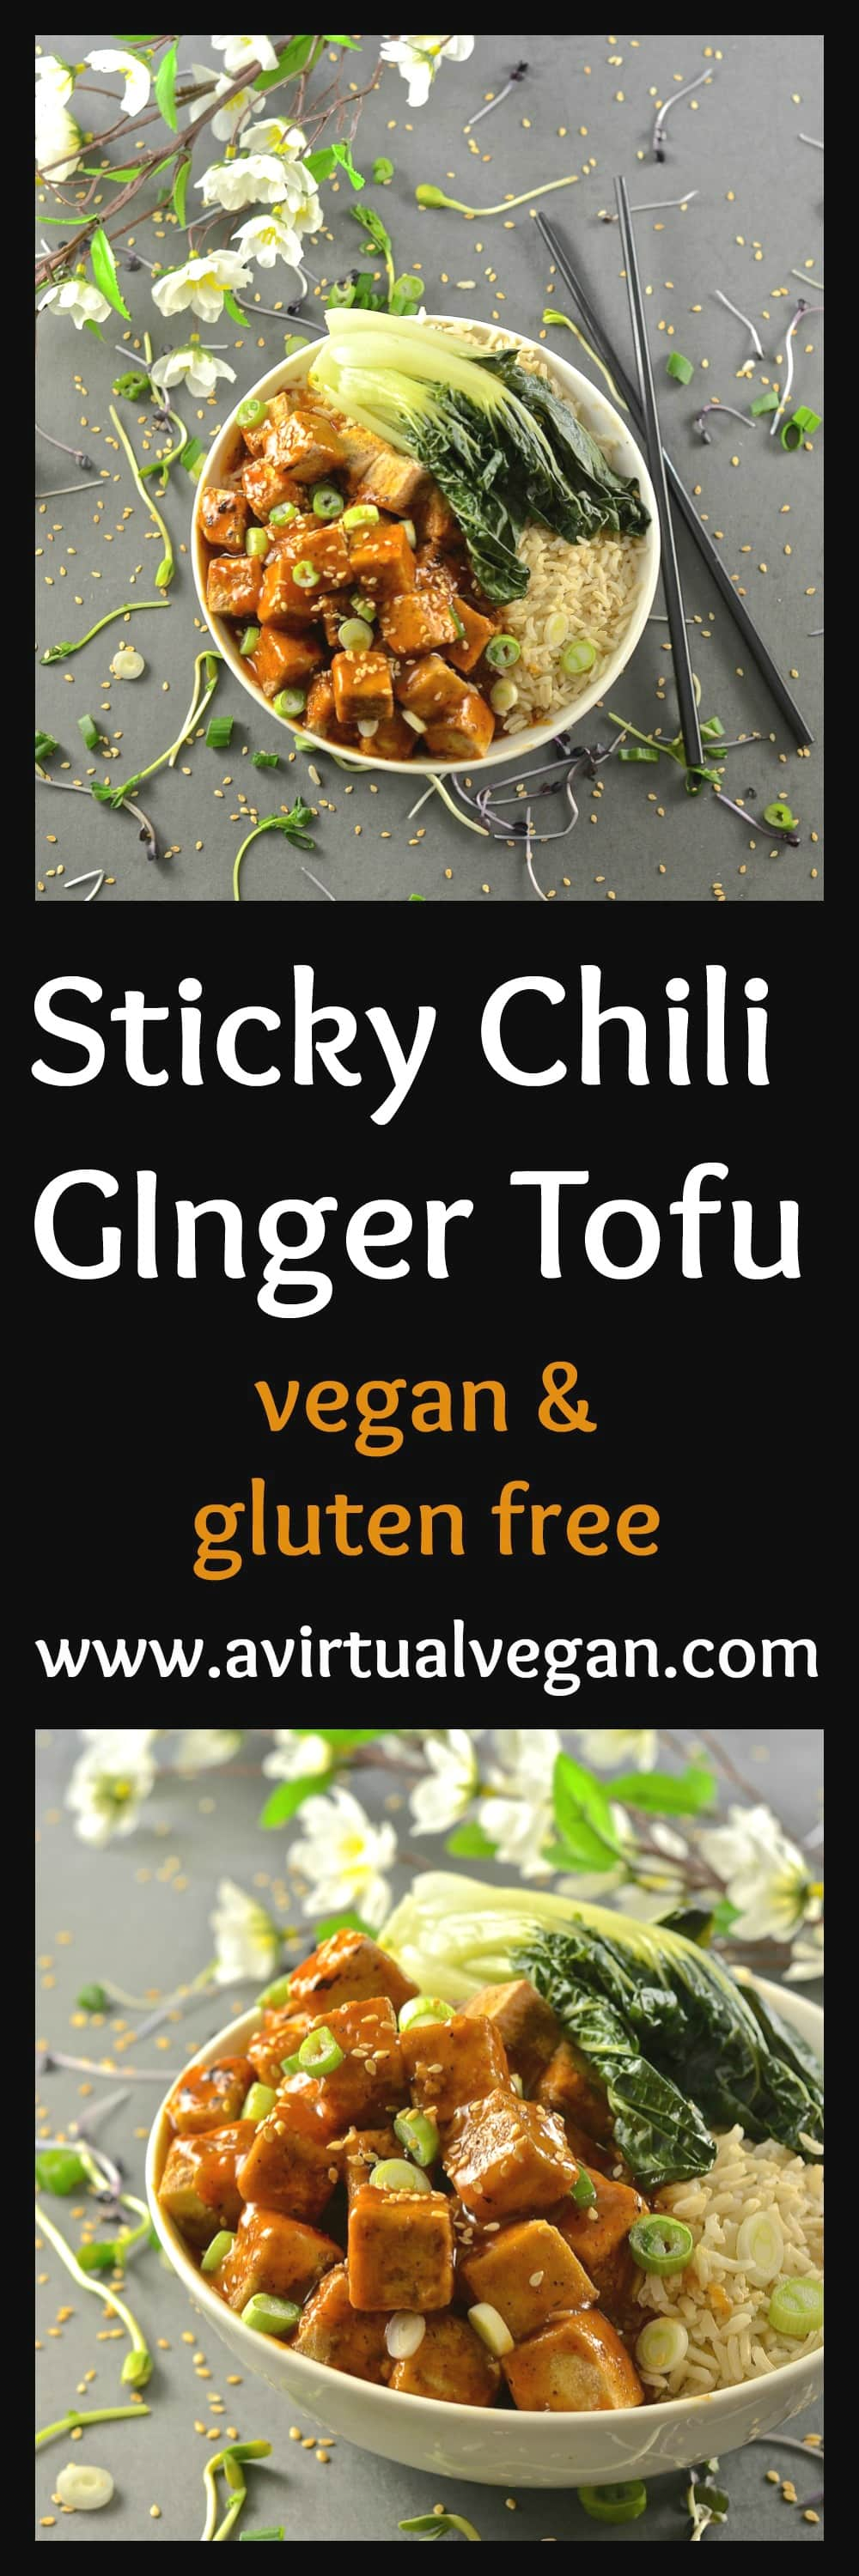 This Asian style Sticky Chili Ginger Tofu is so fast and easy to make. It's sweet, sticky & spicy with amazing depth of flavour. A perfect mid-week meal!